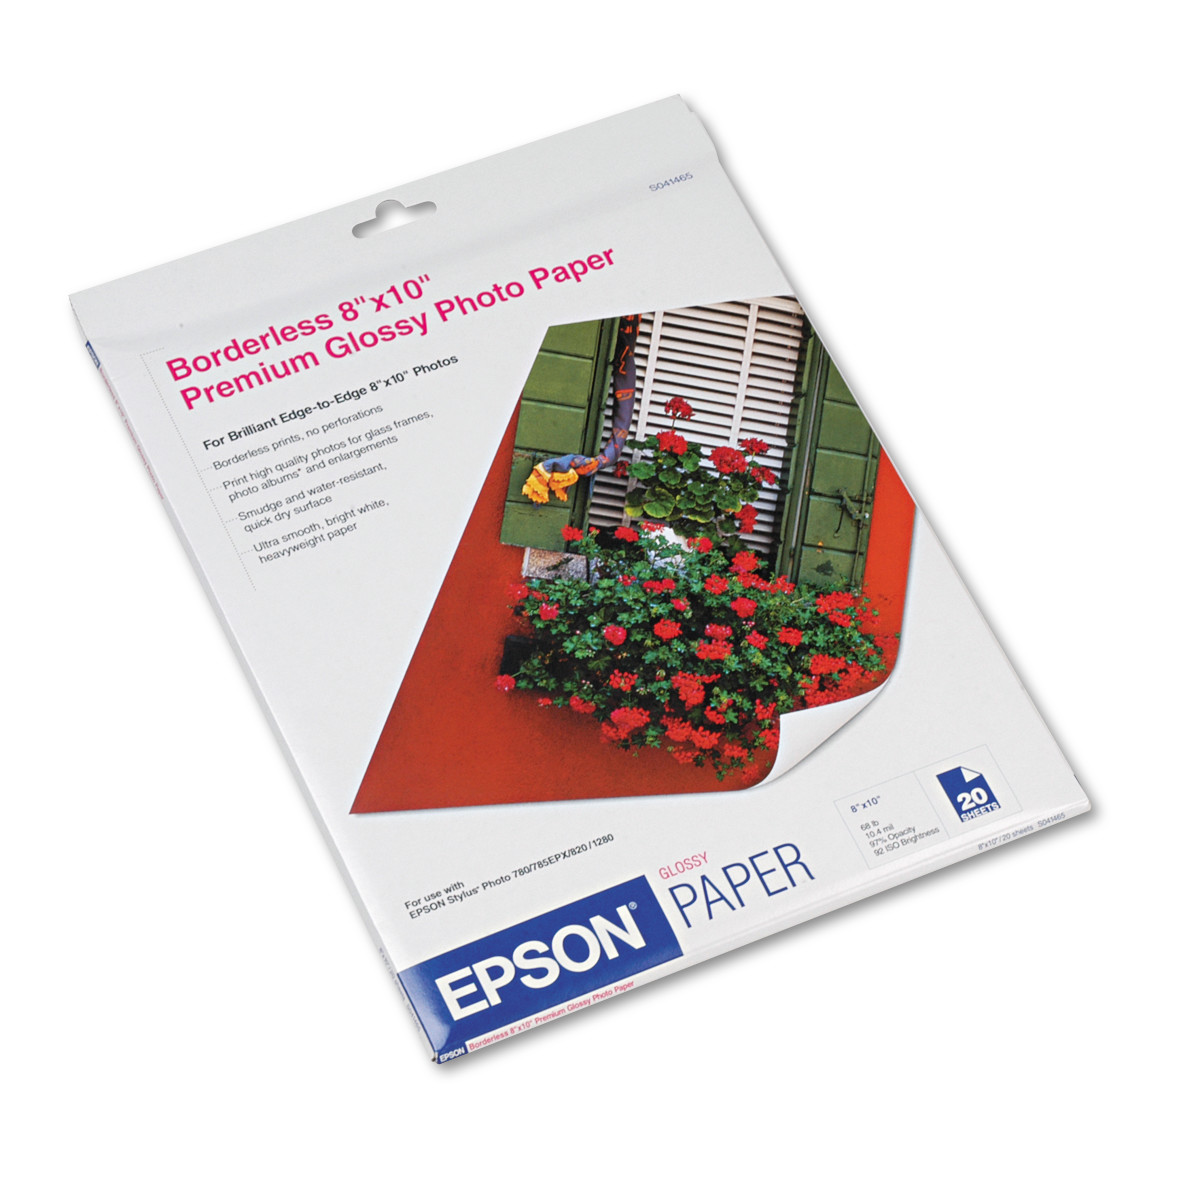 Epson Premium Photo Paper, 68 lbs., High-Gloss, 8 x 10, 20 Sheets/Pack -EPSS041465